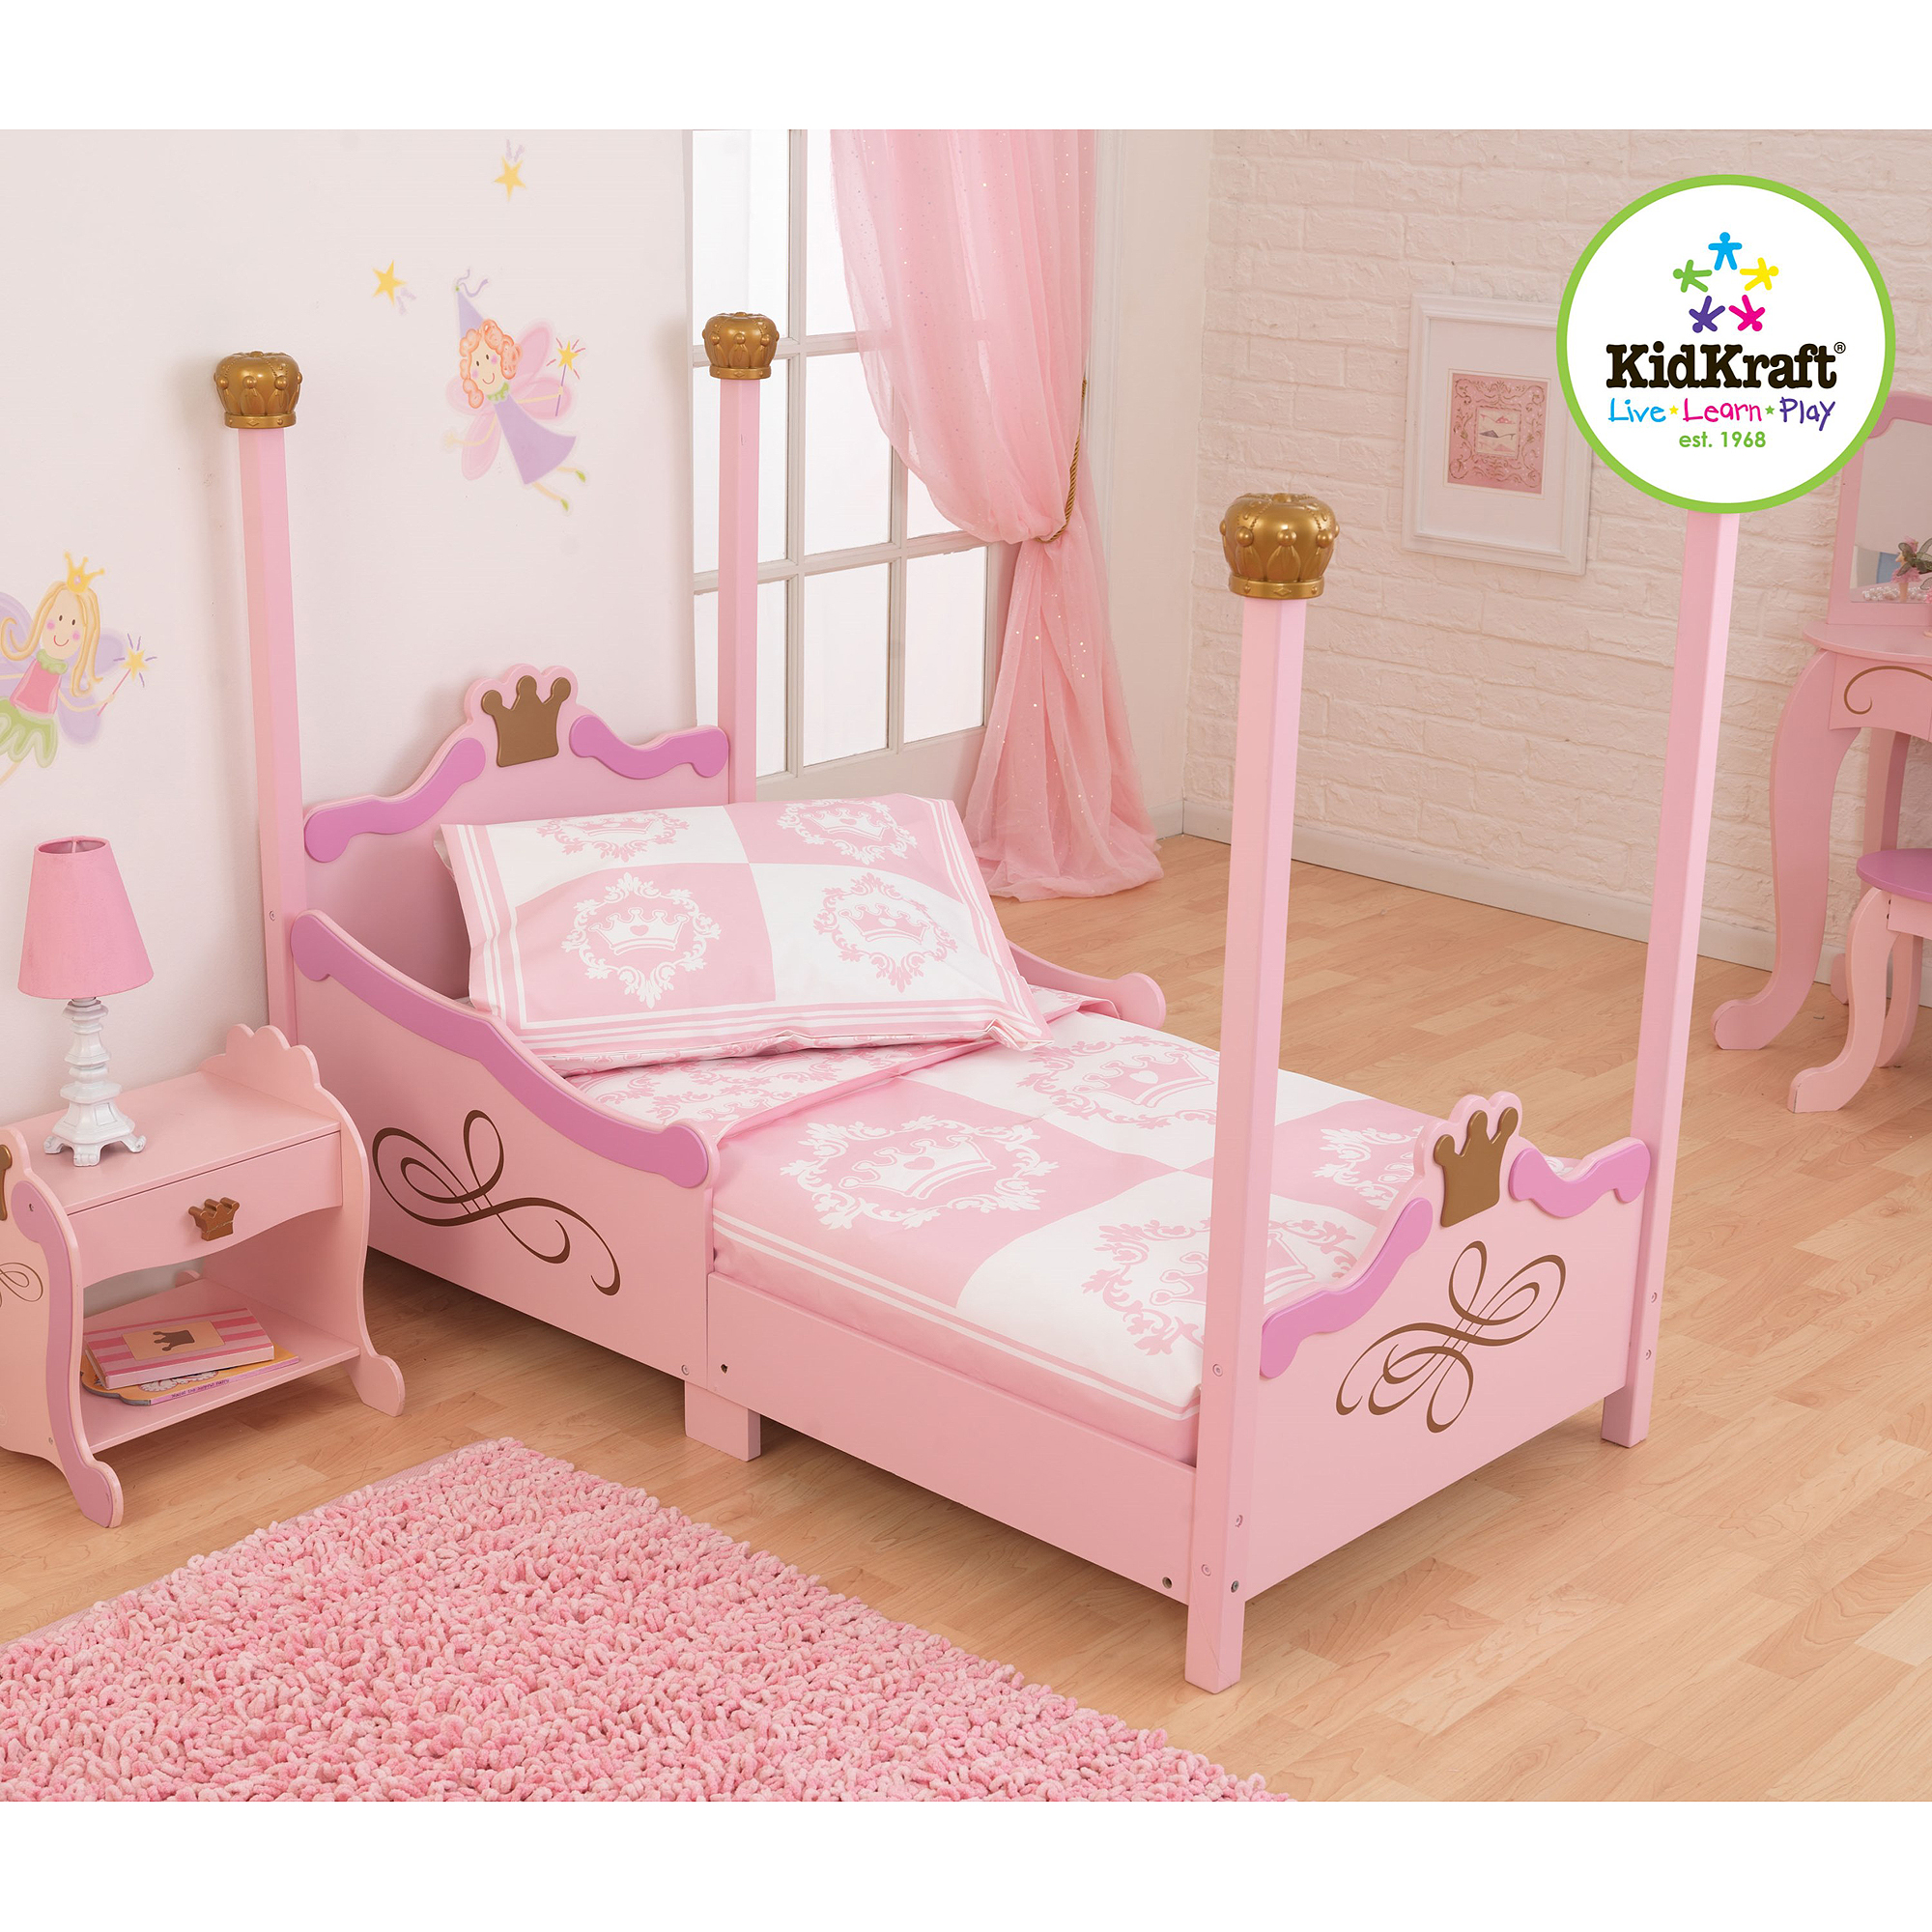 KidKraft Princess 4-Piece Toddler Bedding Set